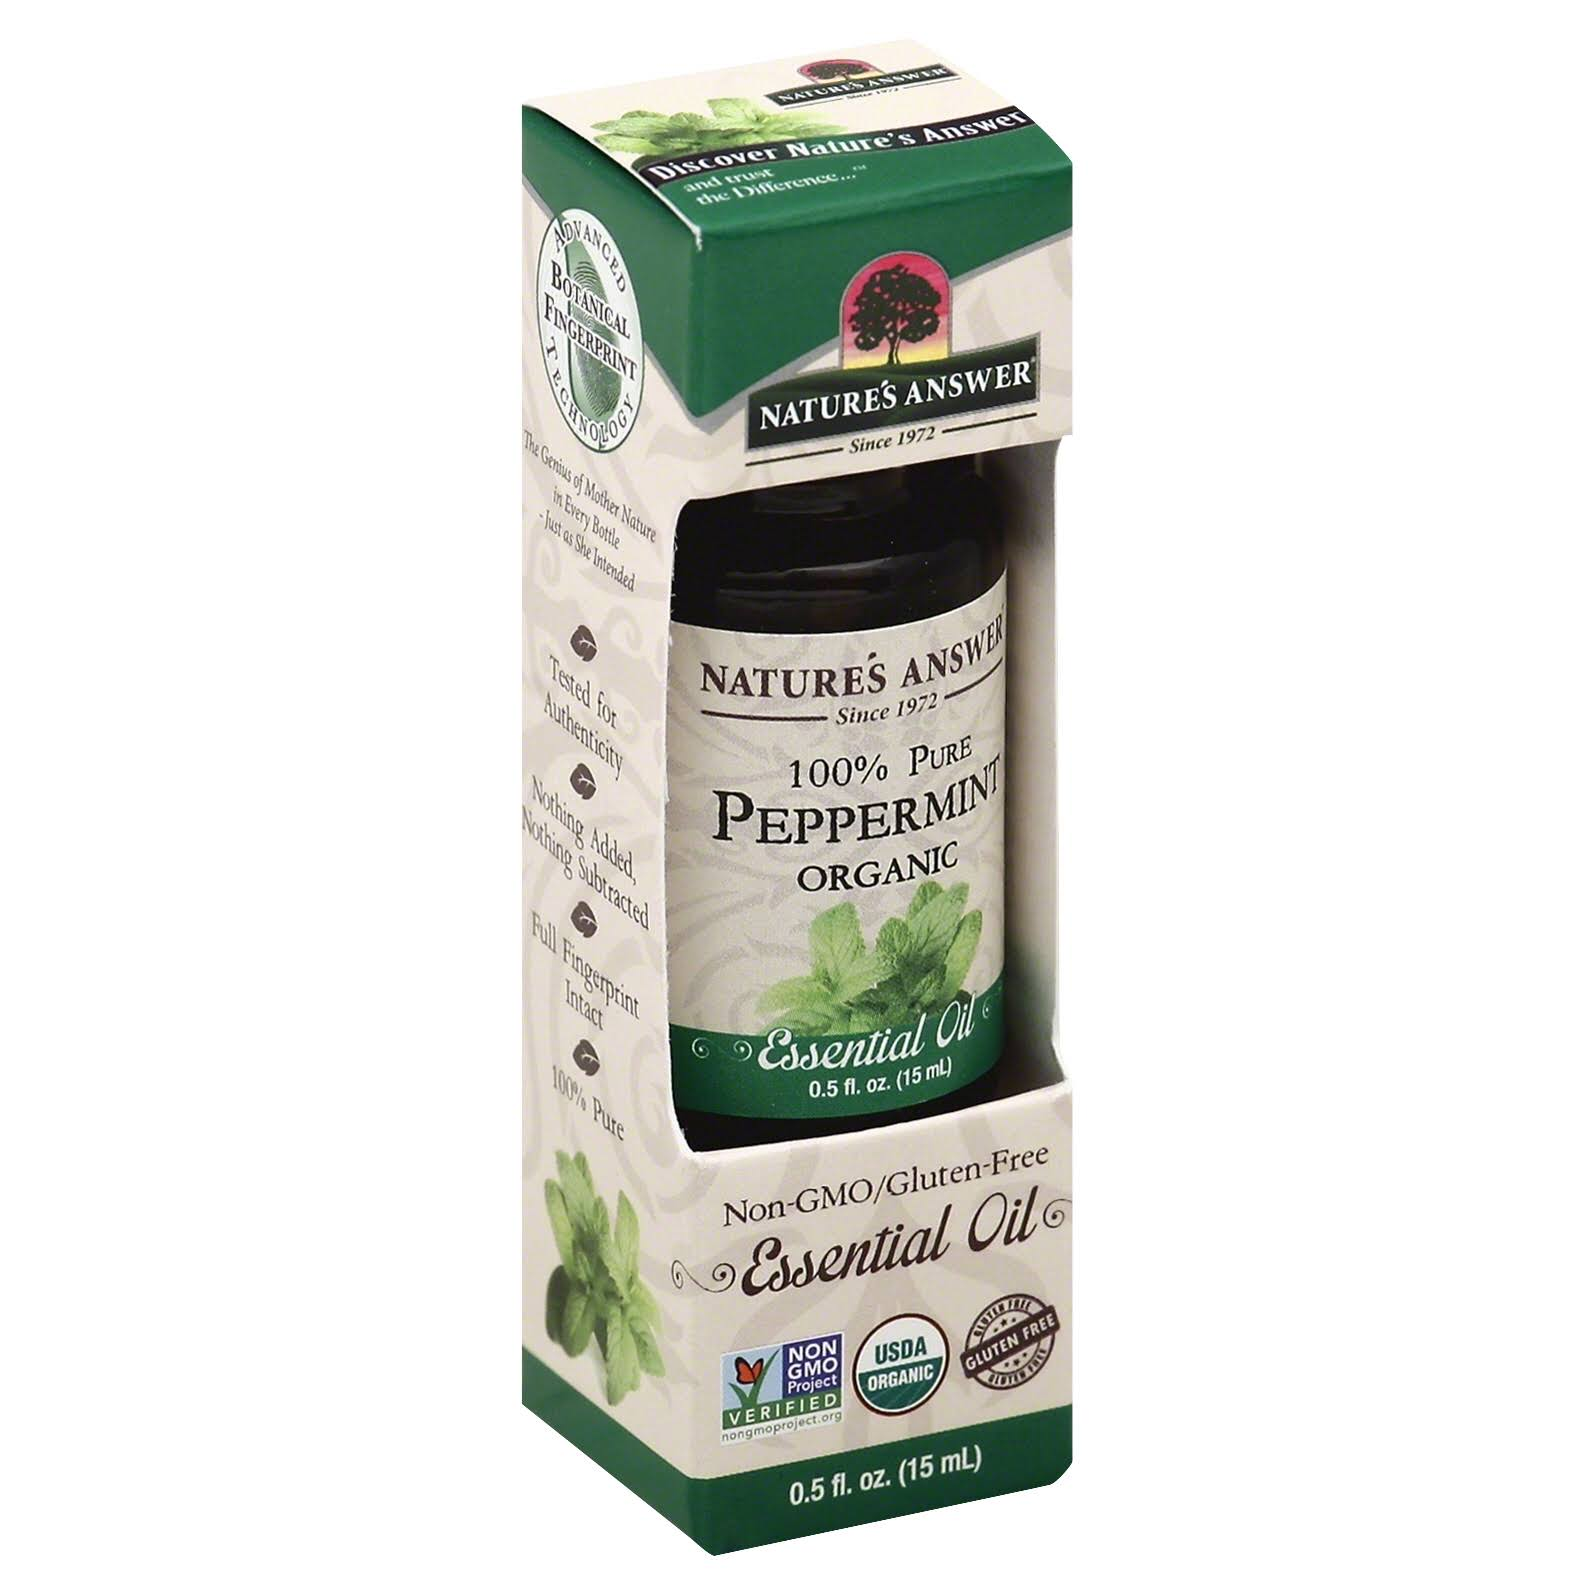 Nature's Answer Pure Peppermint Organic Essential Oil - 0.5oz